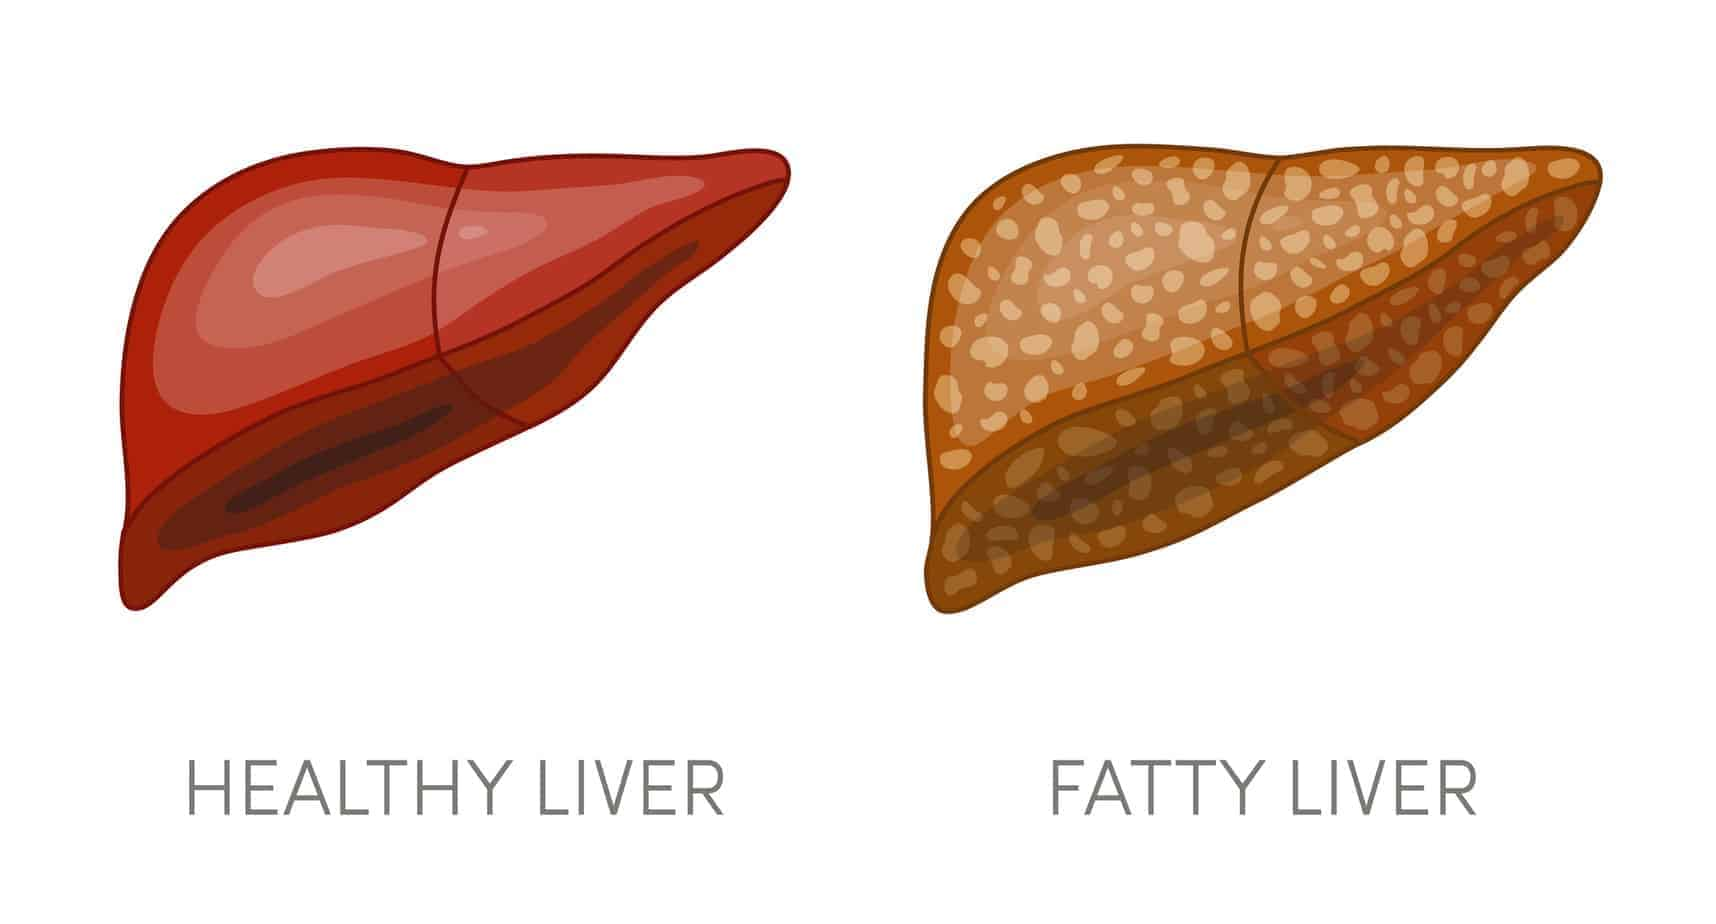 fatty liver diet